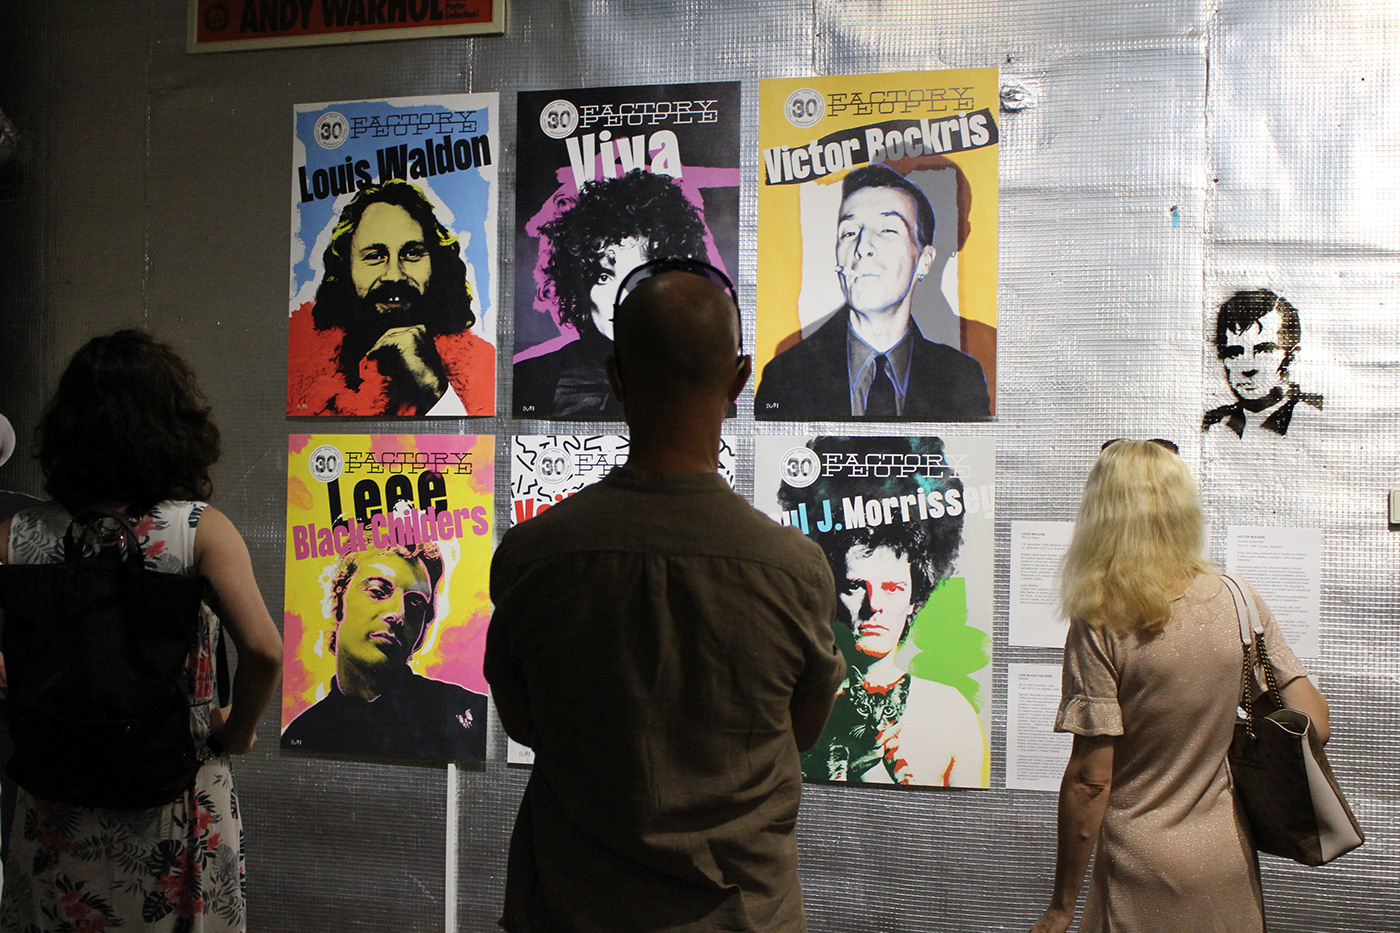 Andy Warhol cultura culture Exhibition  factory people modern art museum poster vernissage gallery